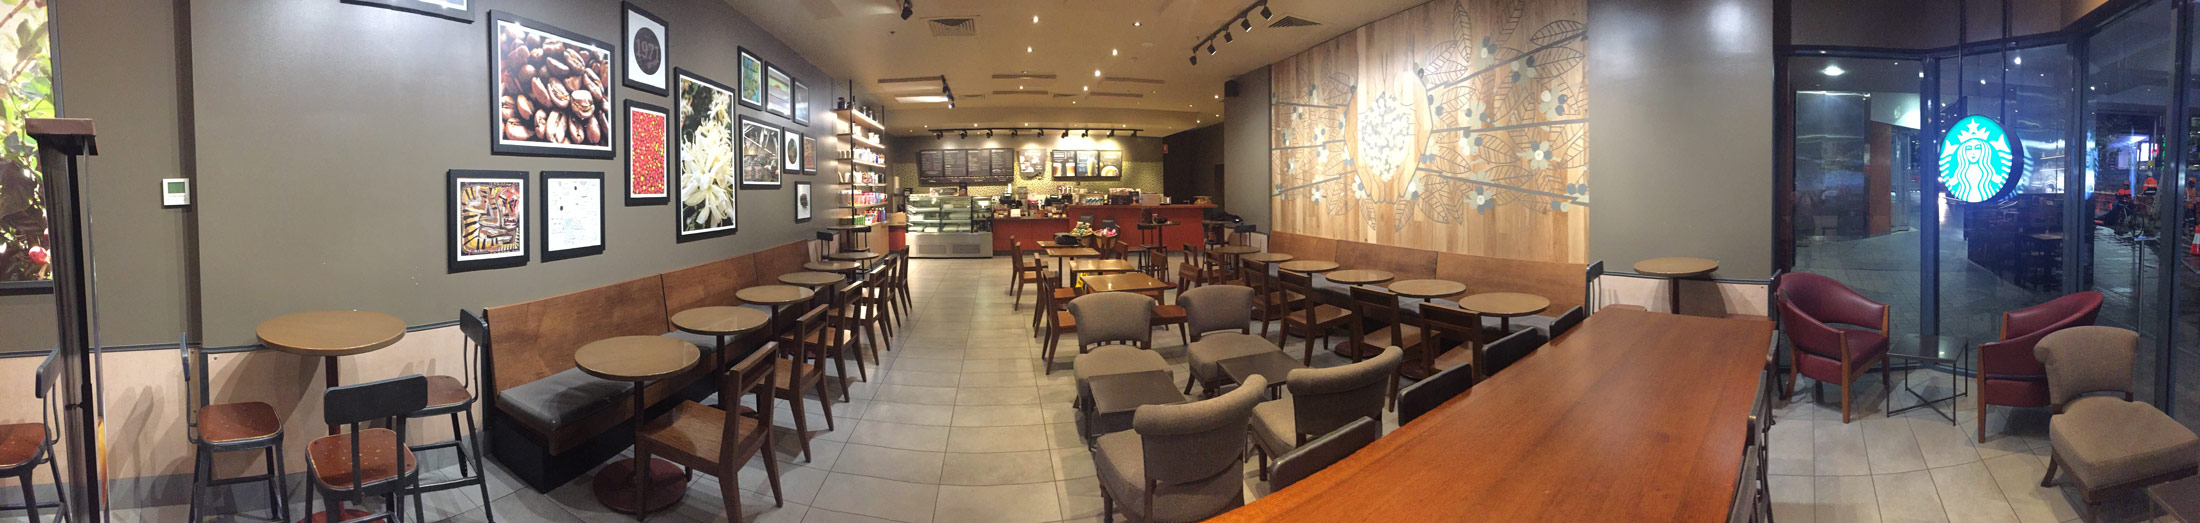 the-art-of-wall-starbucks-george-st-mural-pano-small